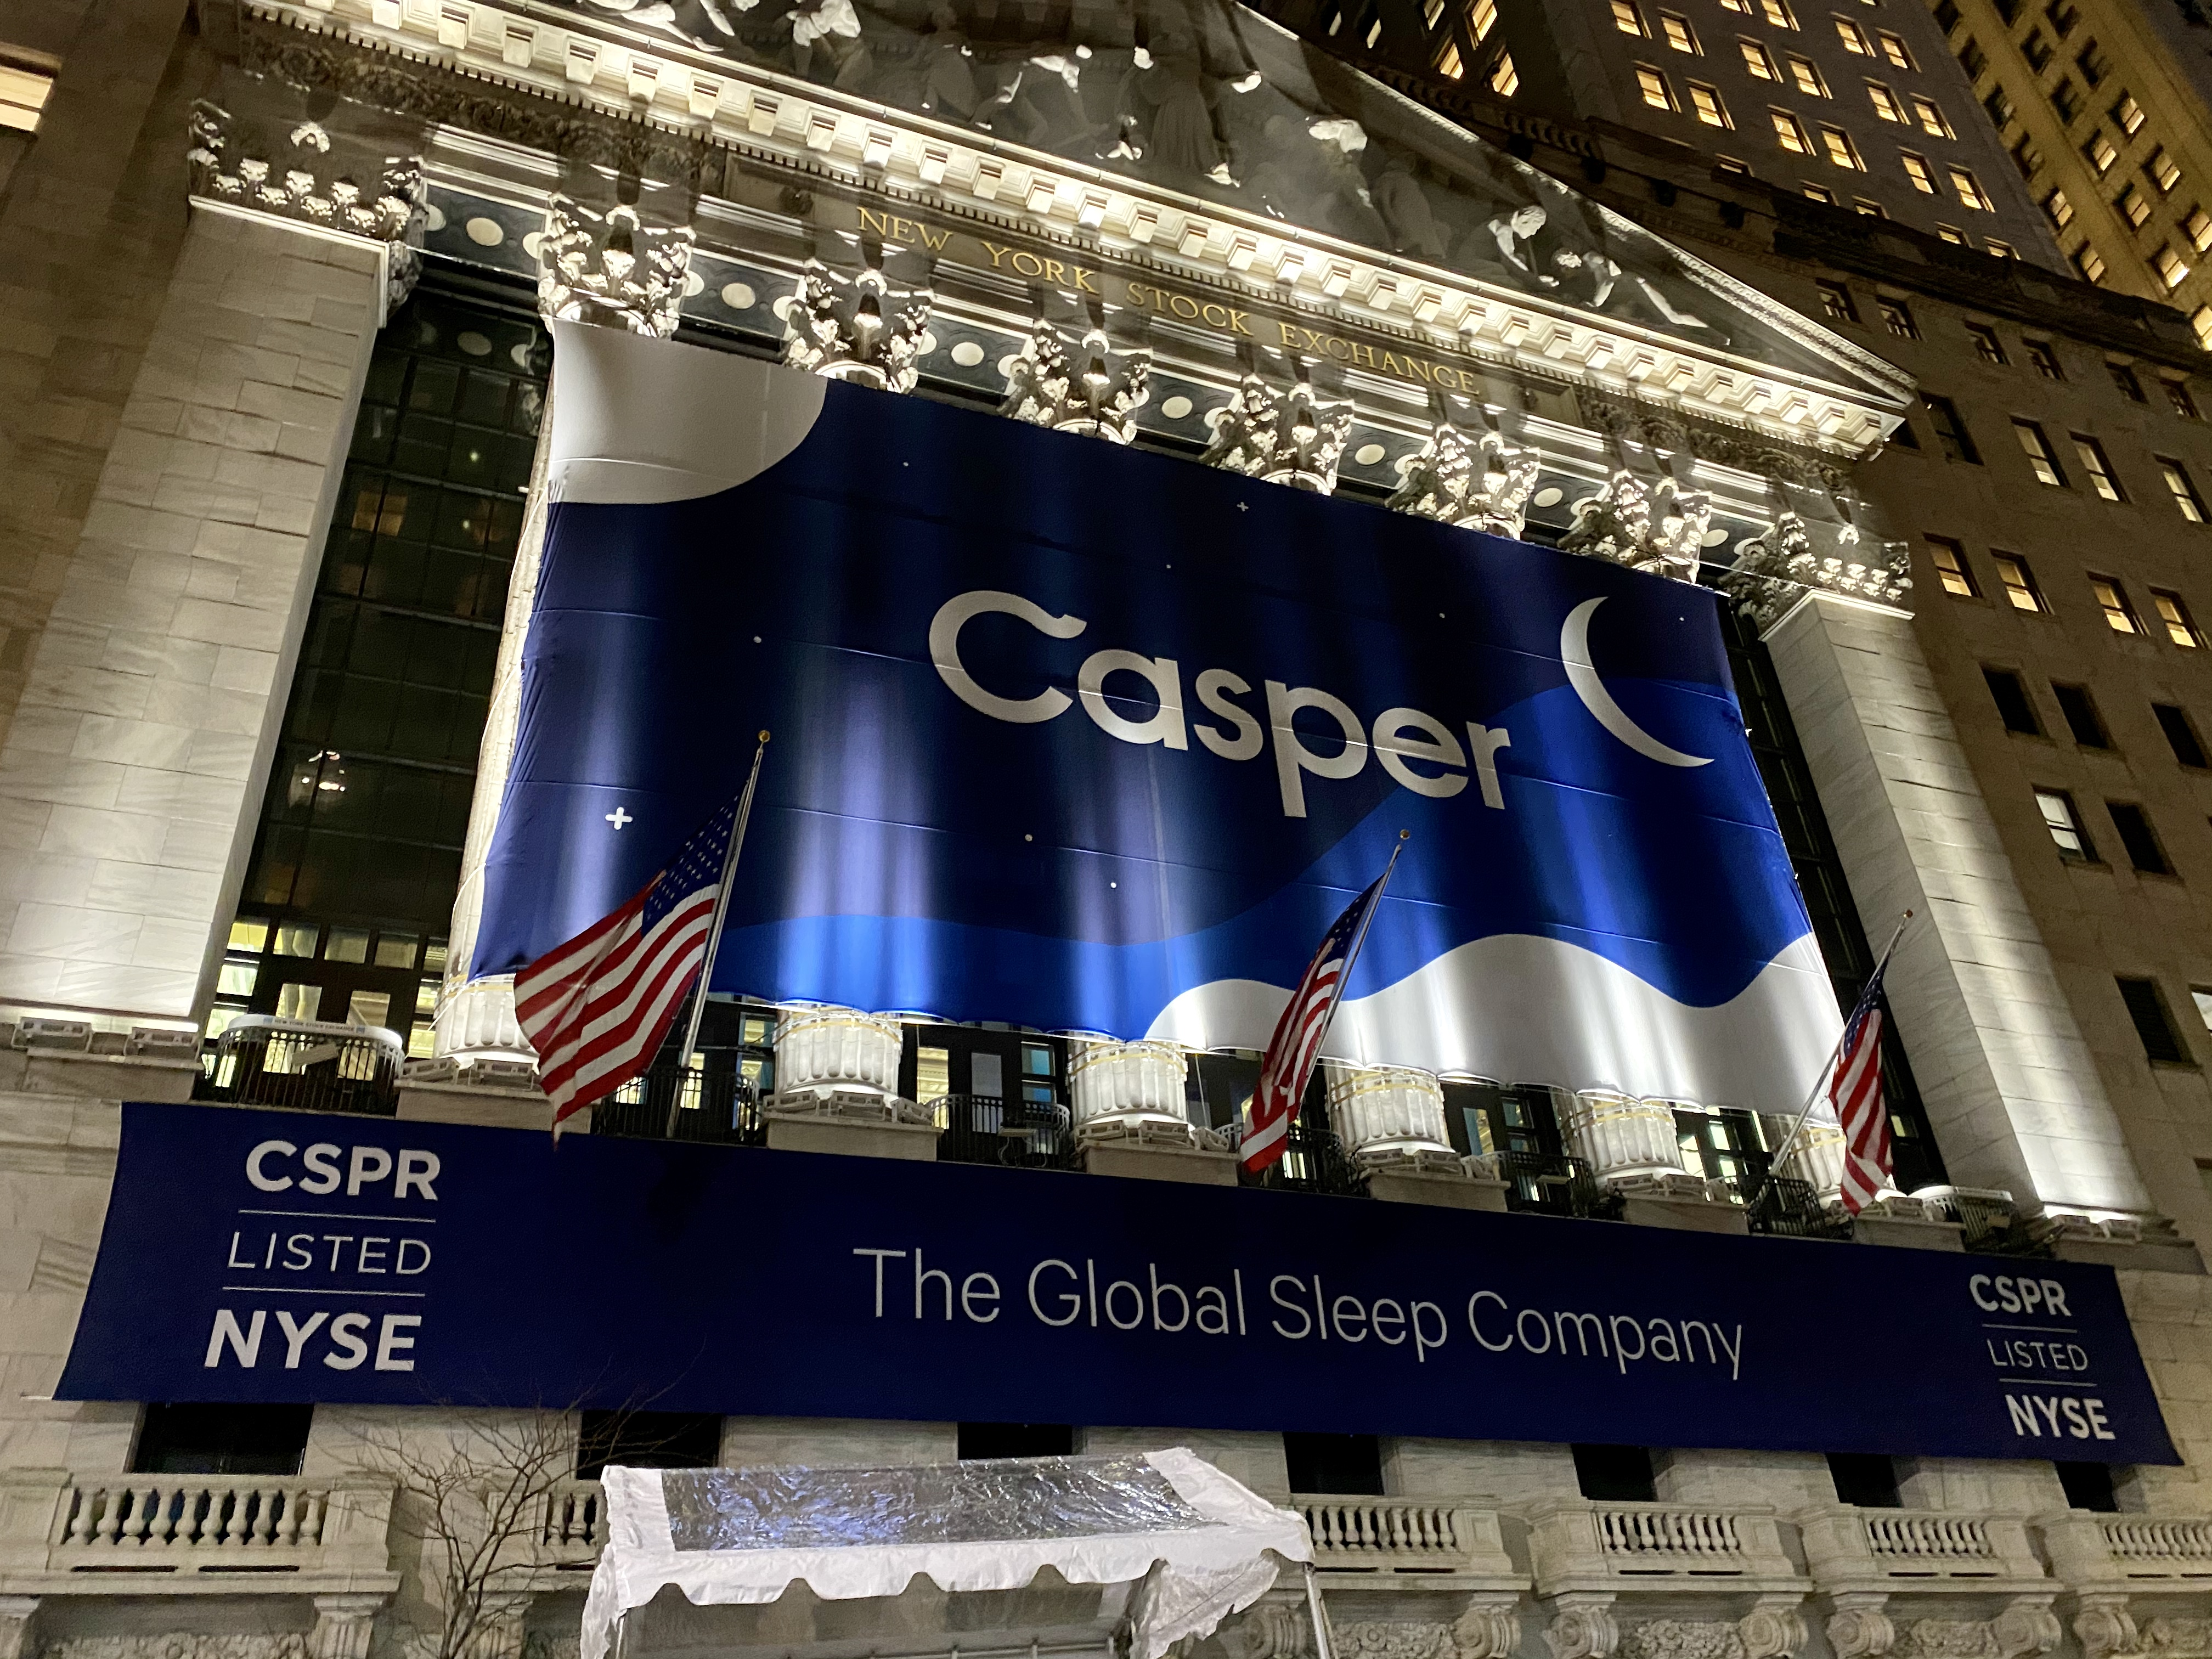 A Casper Sleep banner covers the front of the New York Stock Exchange the night before its IPO.